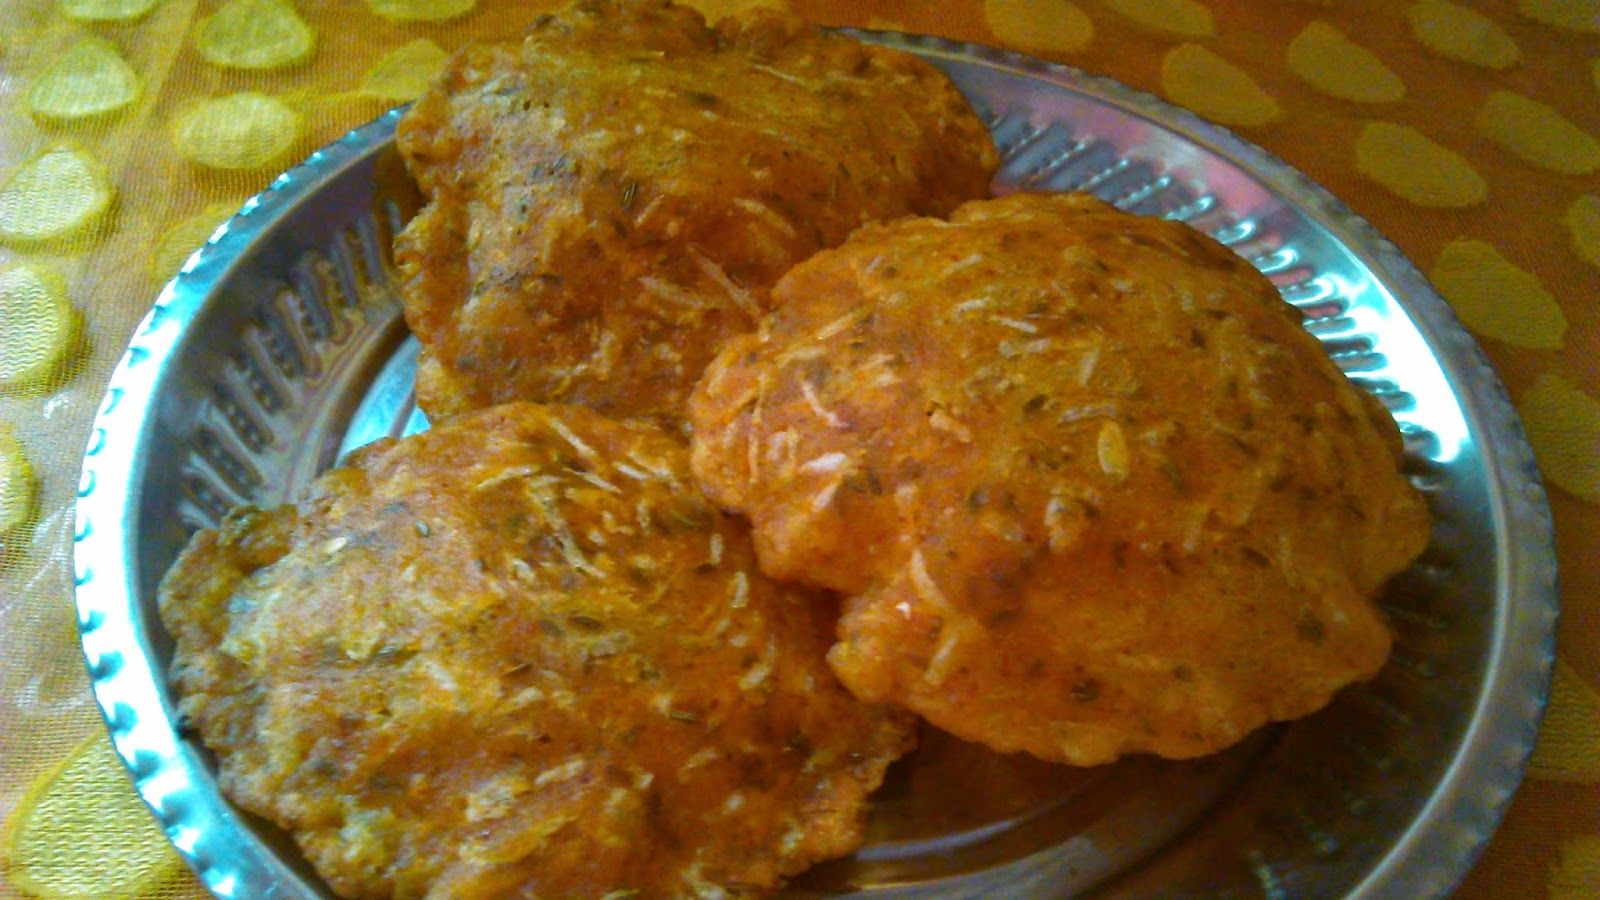 Chandrapuri wada recipes worth trying pinterest food and recipes forumfinder Gallery